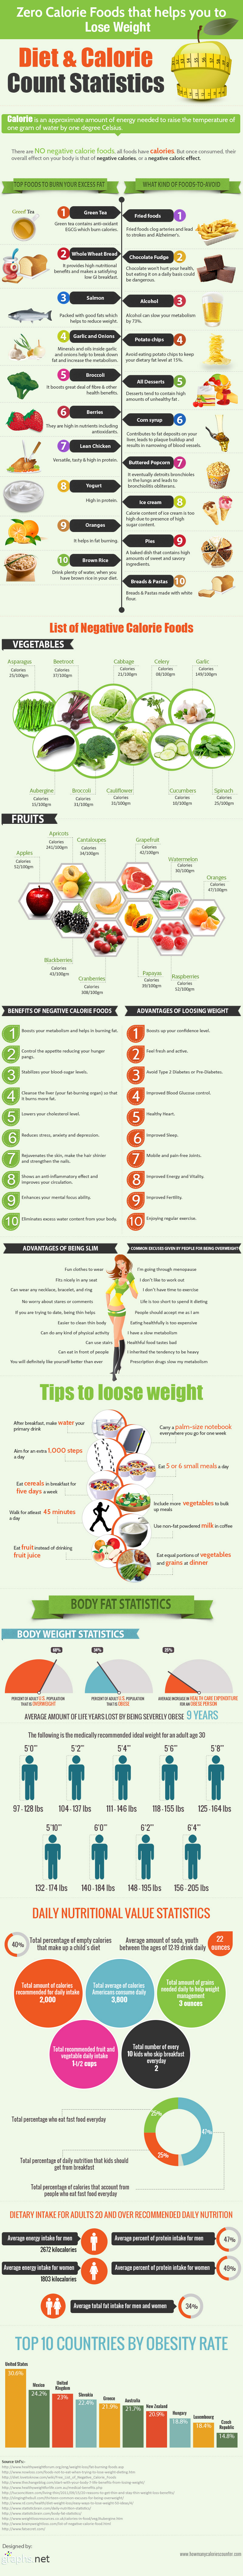 Calorie Counting for Weight Loss